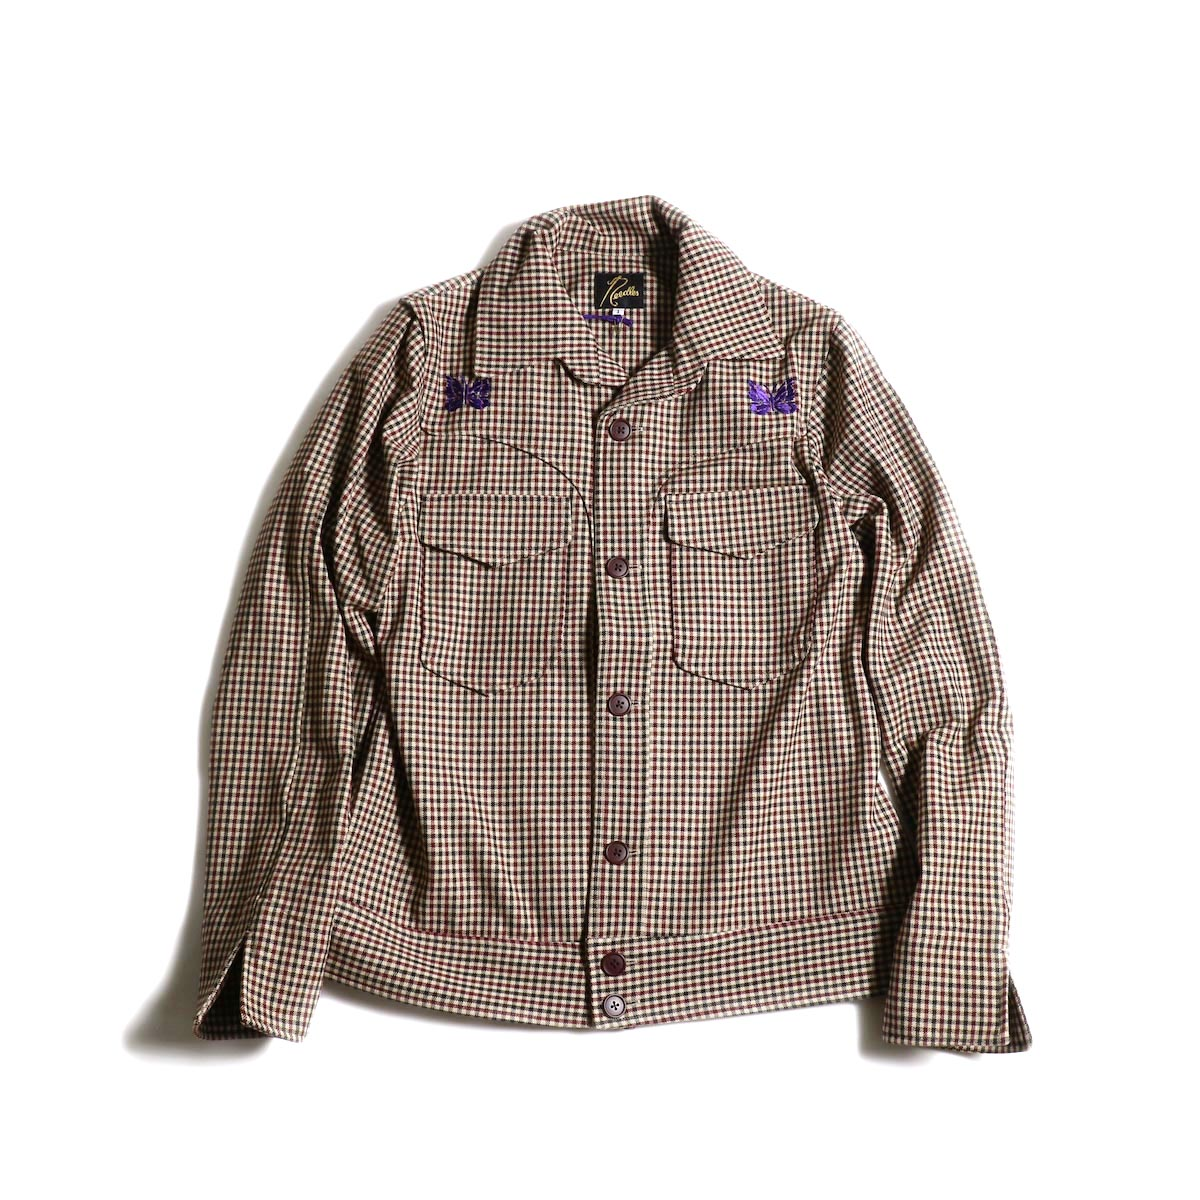 Needles / Cowboy Leisure Jacket -Gunclub Plaid (Bordeaux)正面